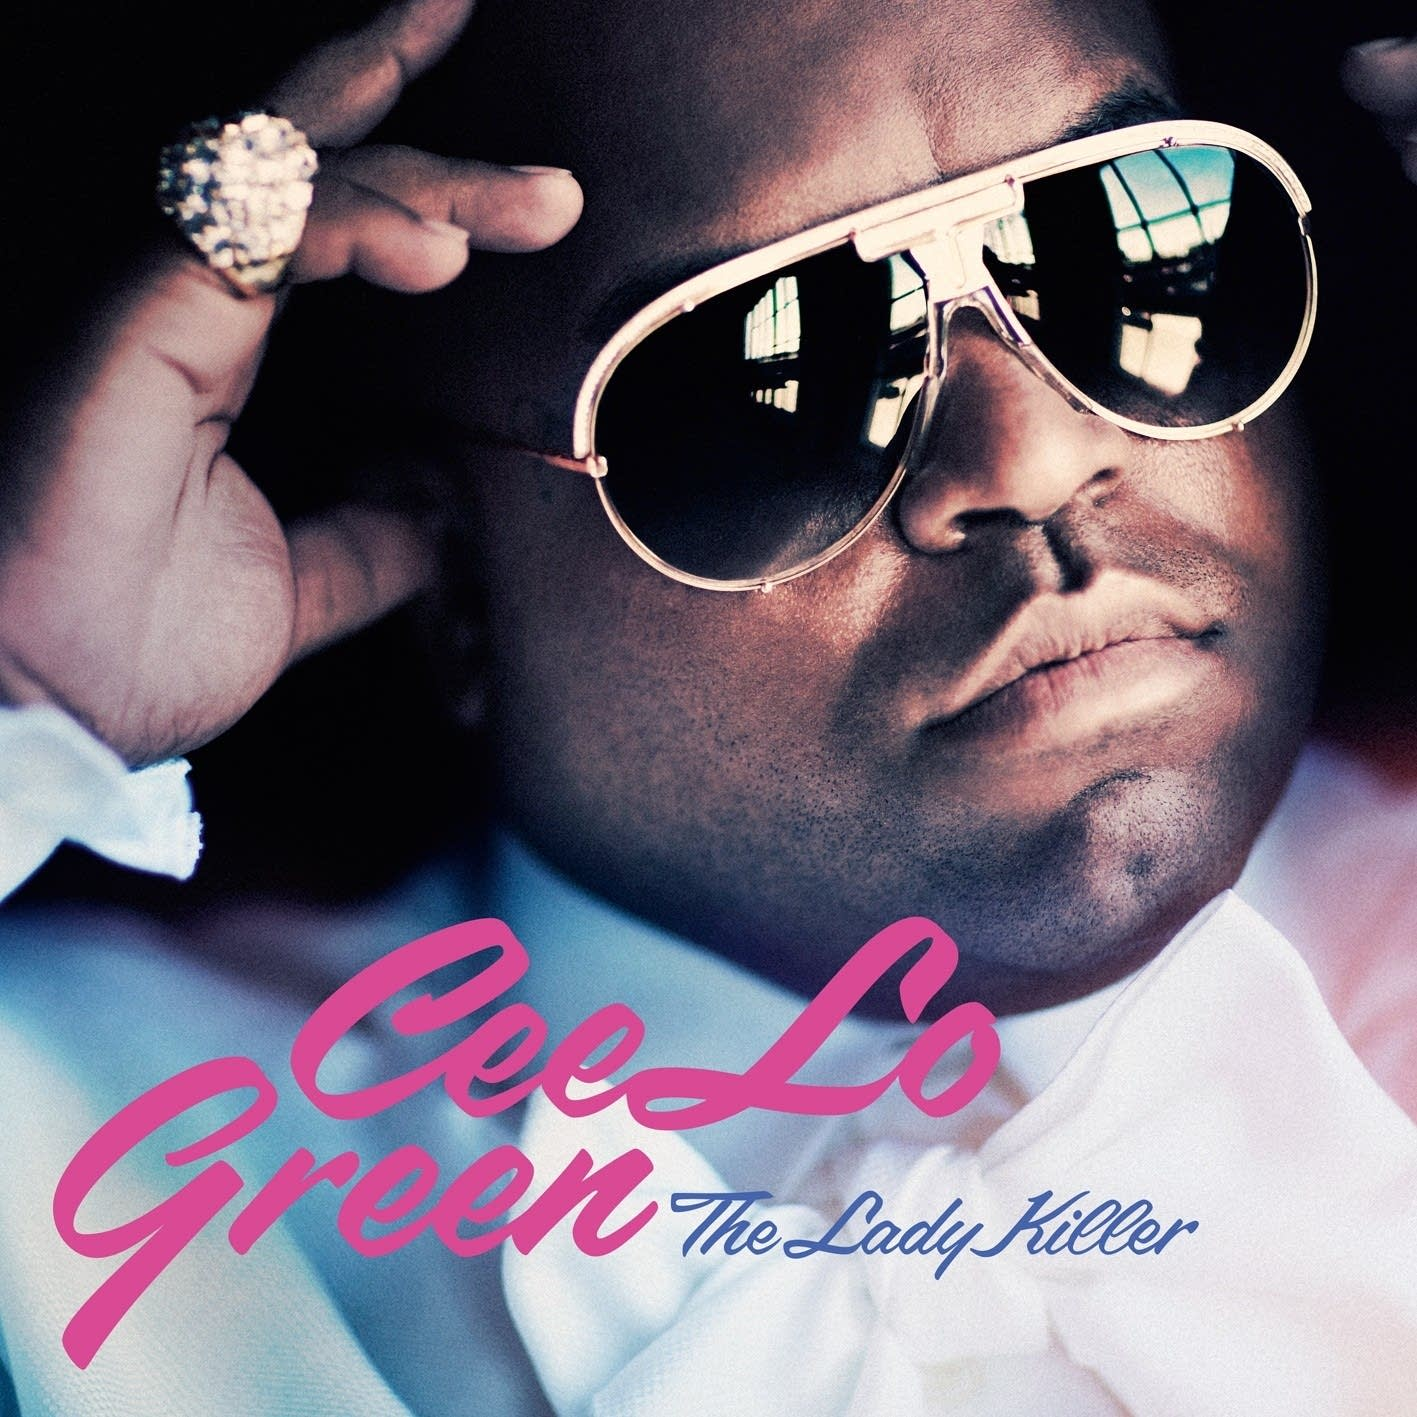 Cee-Lo Green, The Lady Killer